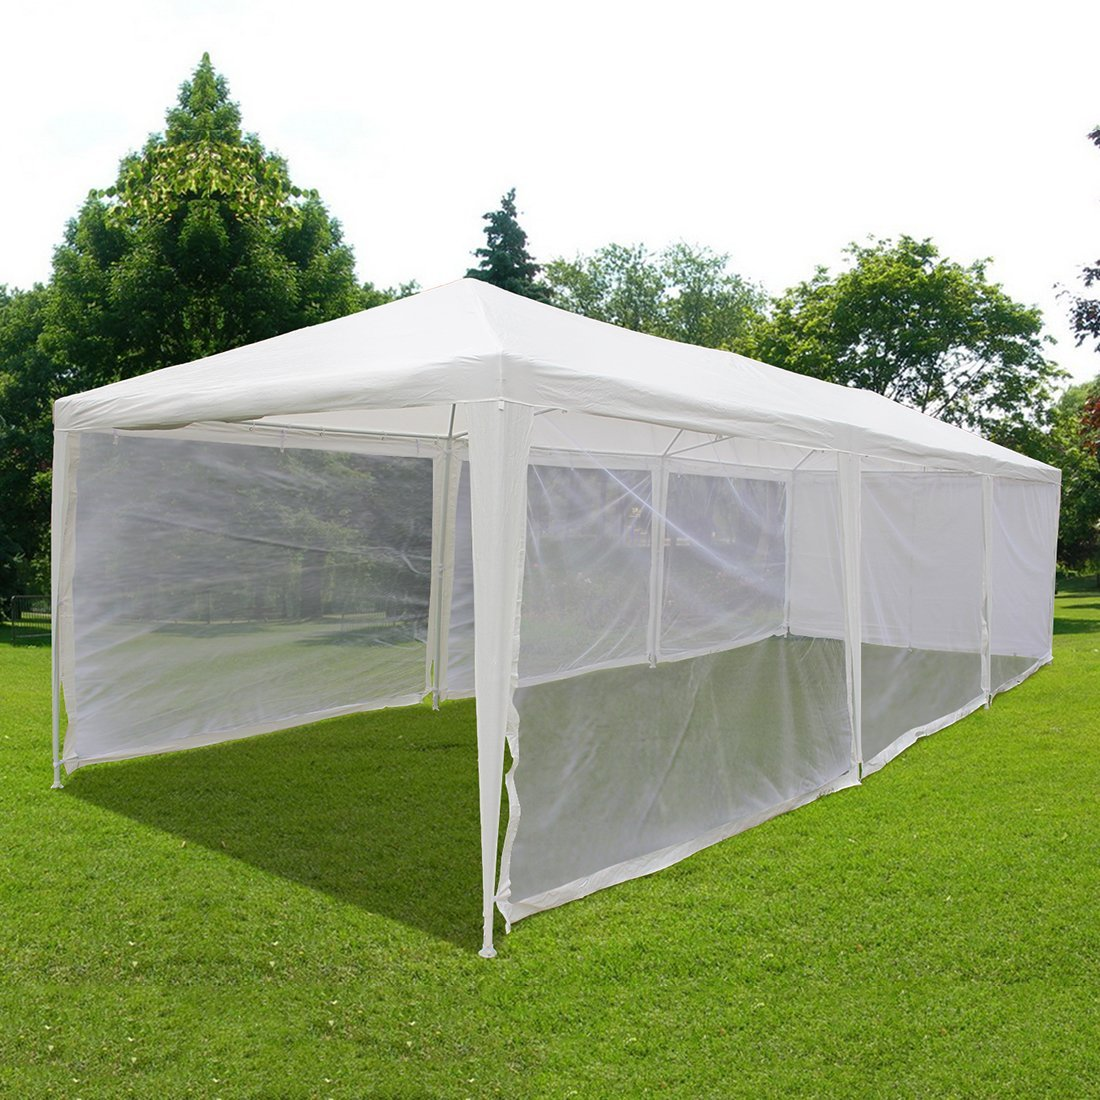 Quictent 10X30 Outdoor Canopy Gazebo Party Wedding tent Screen House Sun Shade Shelter with Fully Enclosed Mesh Side... by